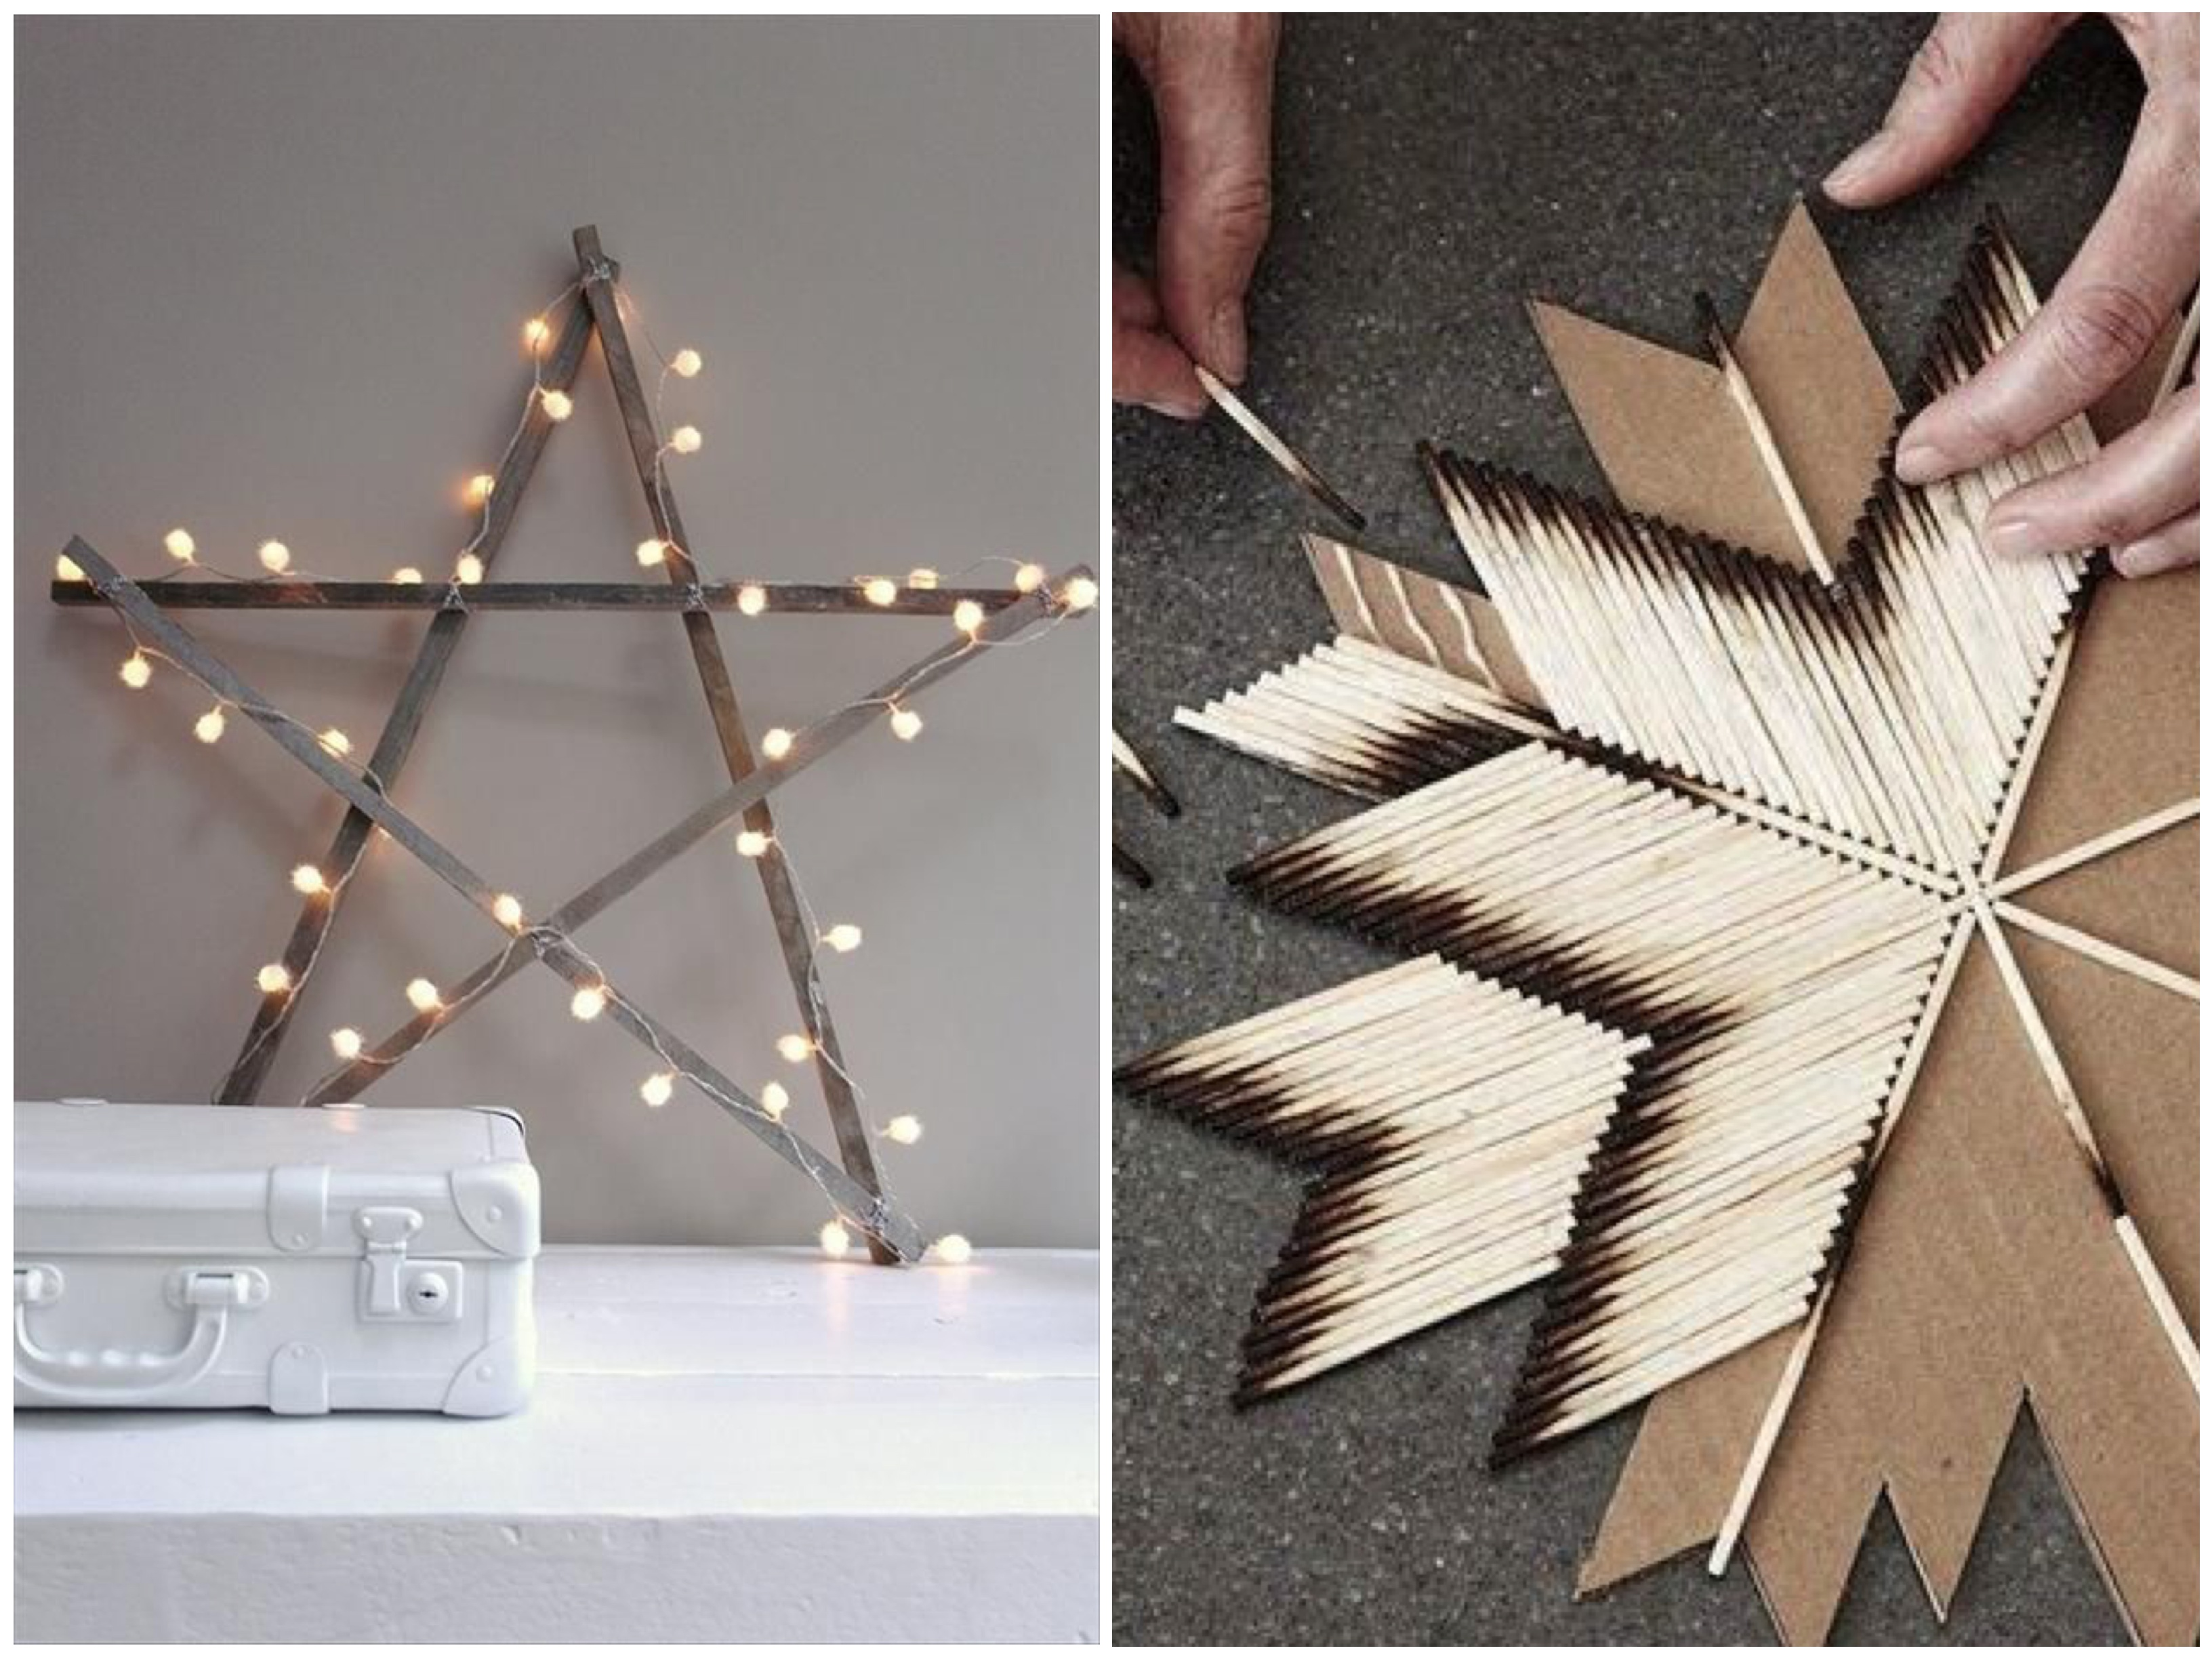 D coration de no l faire soi m me 51 diy de no l - Decor de noel a faire soi meme ...